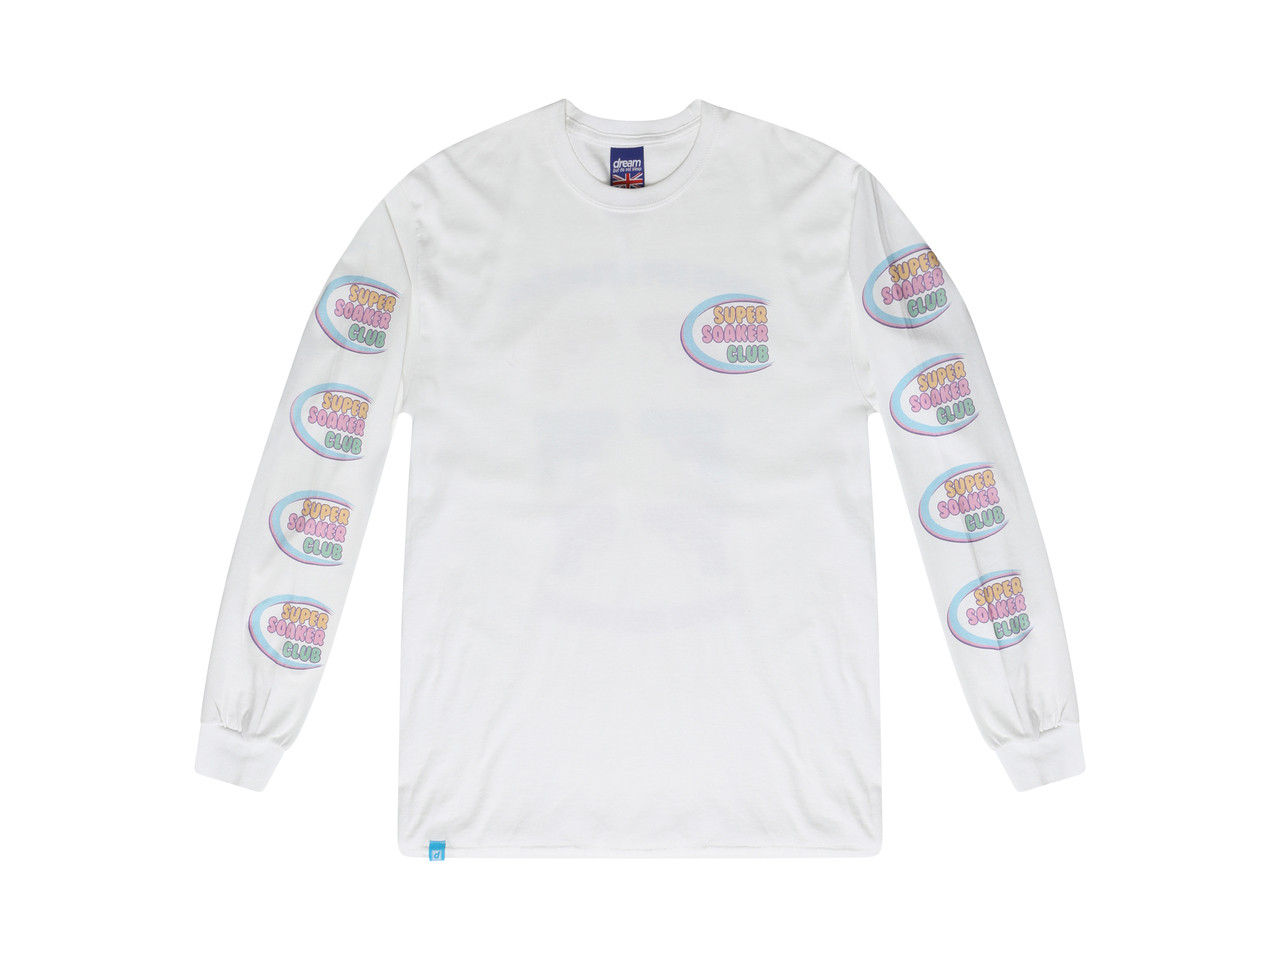 White Long Sleeved T-shirt Super Soaker Print